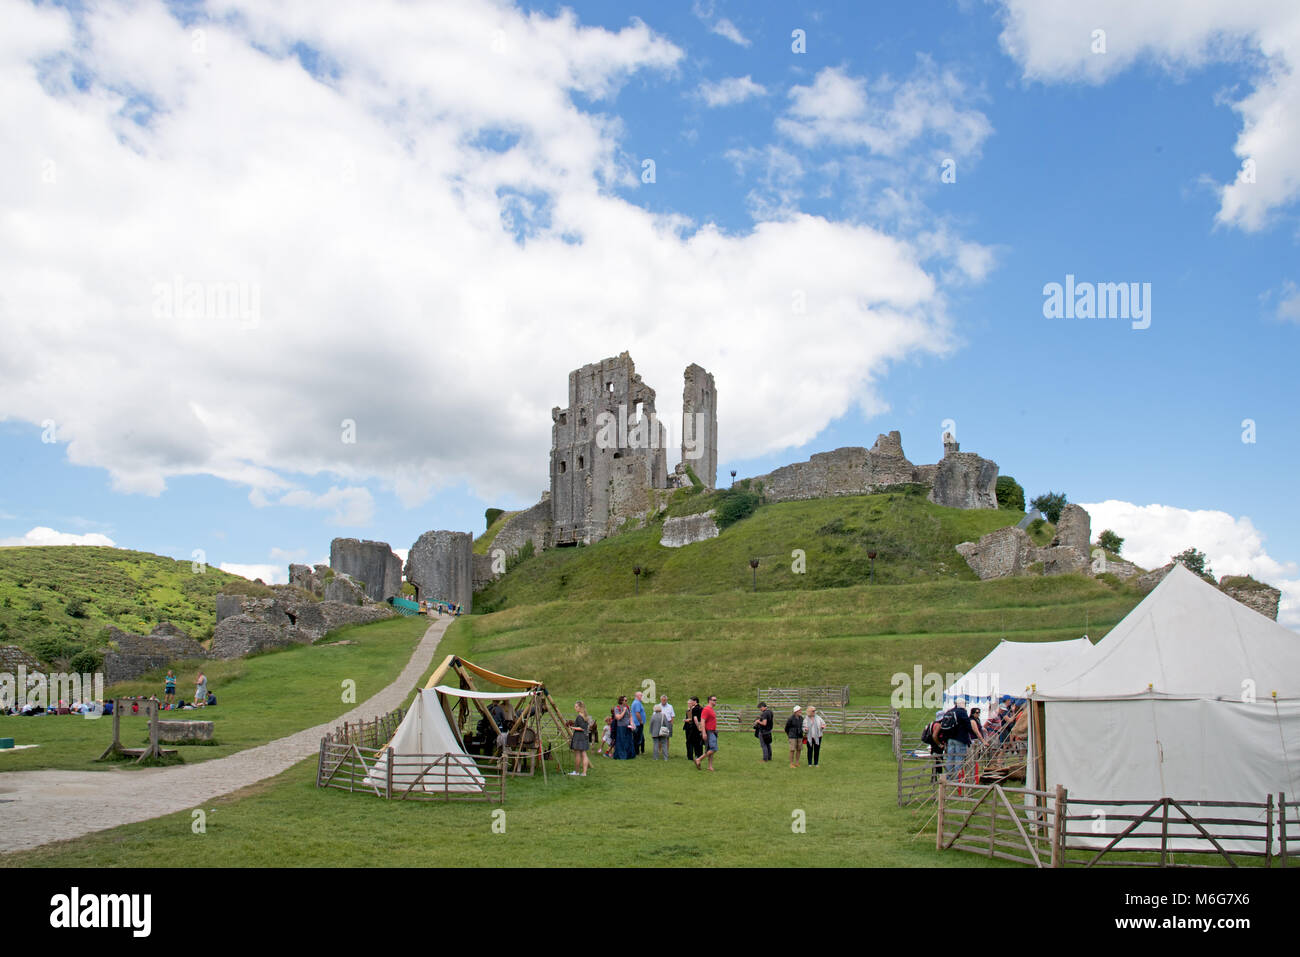 A mediaeval fair in the grounds of Corfe Castle, Dorset, England - Stock Image